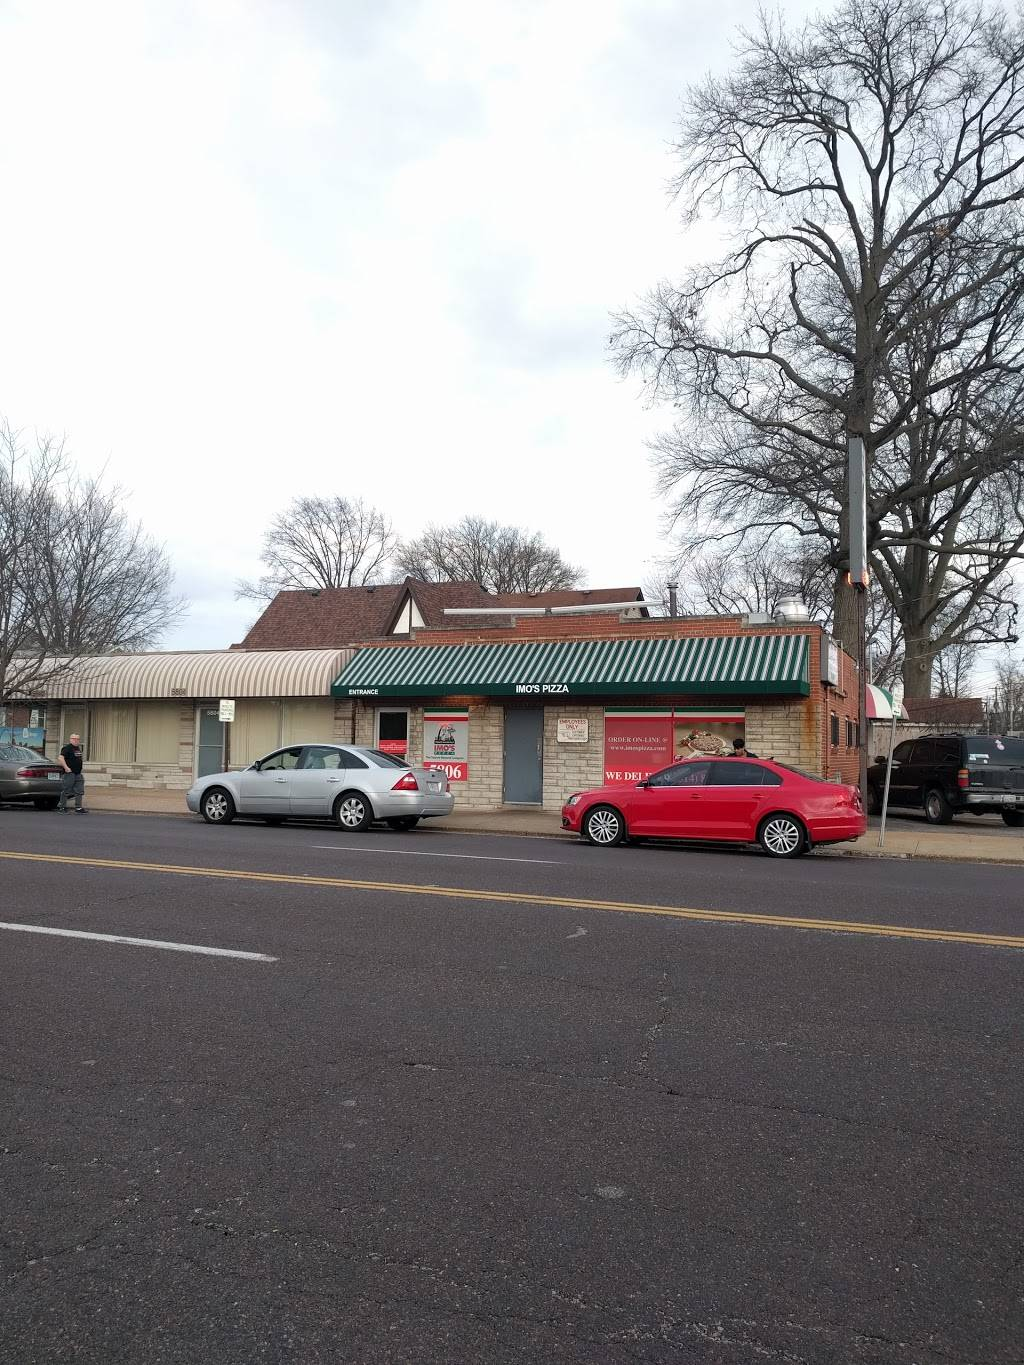 Imos Pizza - meal delivery  | Photo 5 of 10 | Address: 5806 Hampton Ave, St. Louis, MO 63109, USA | Phone: (314) 832-9677